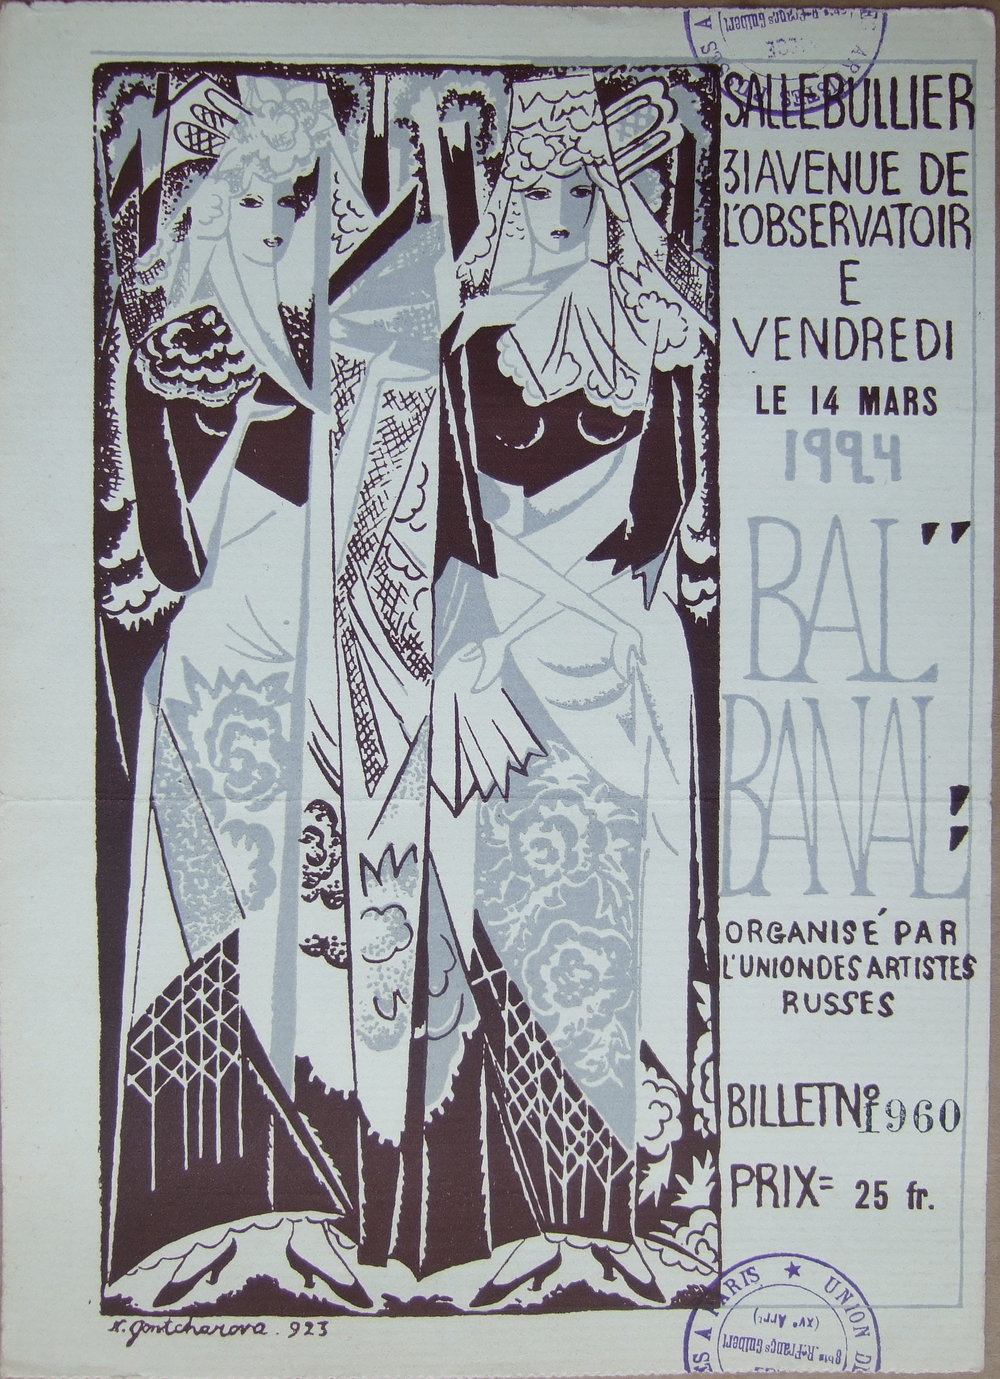 Ticket for BAL BANAL Paris 1924